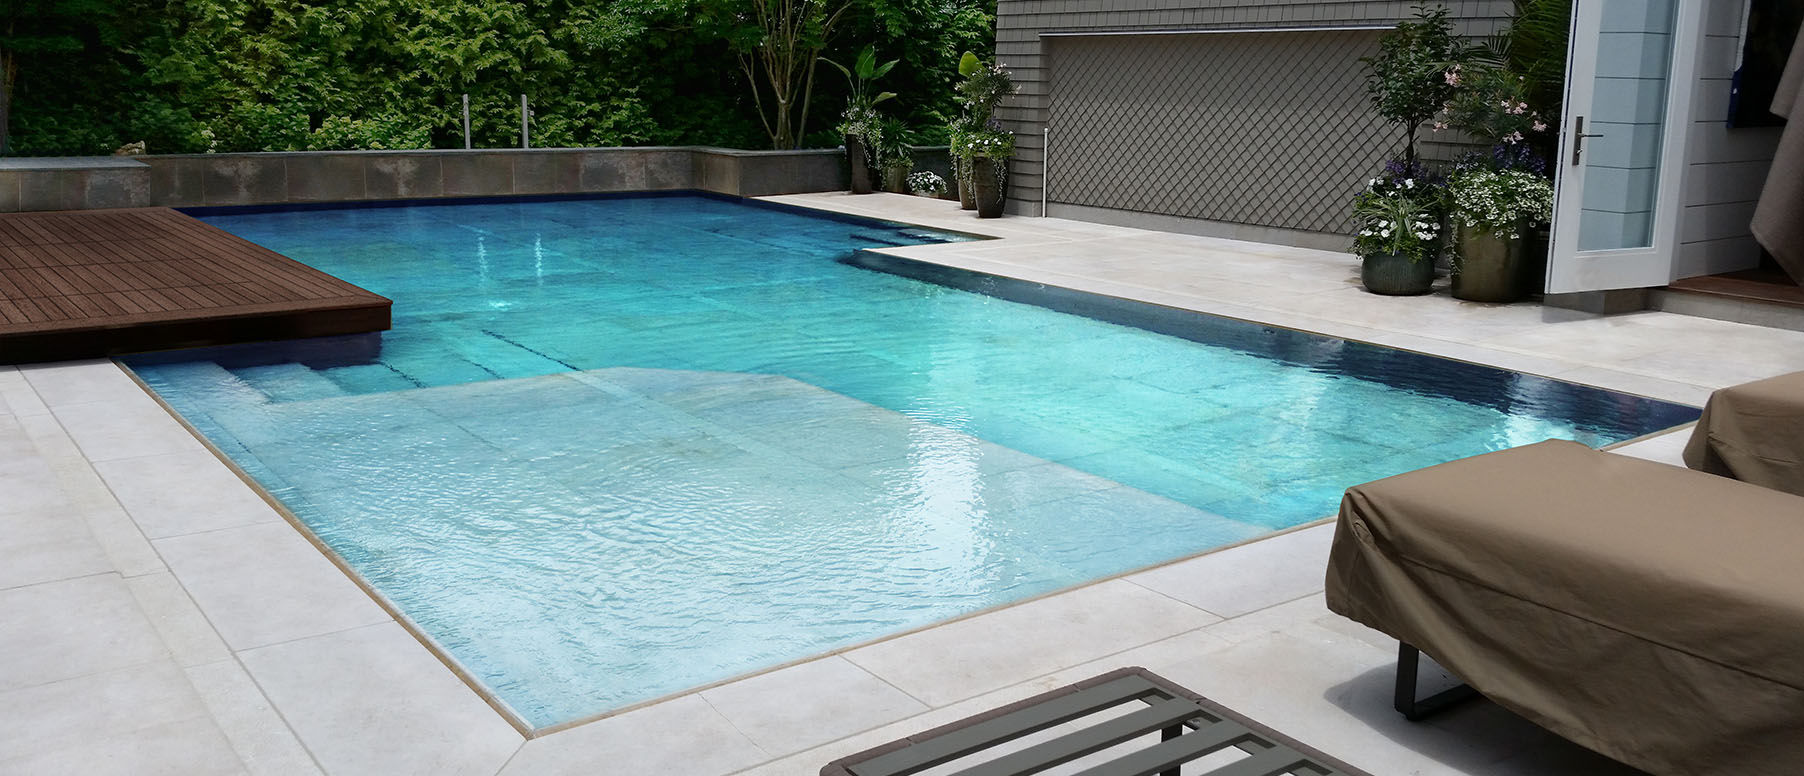 Movable Floors for Swimming Pools | Automatic Pool Covers | Pool ...